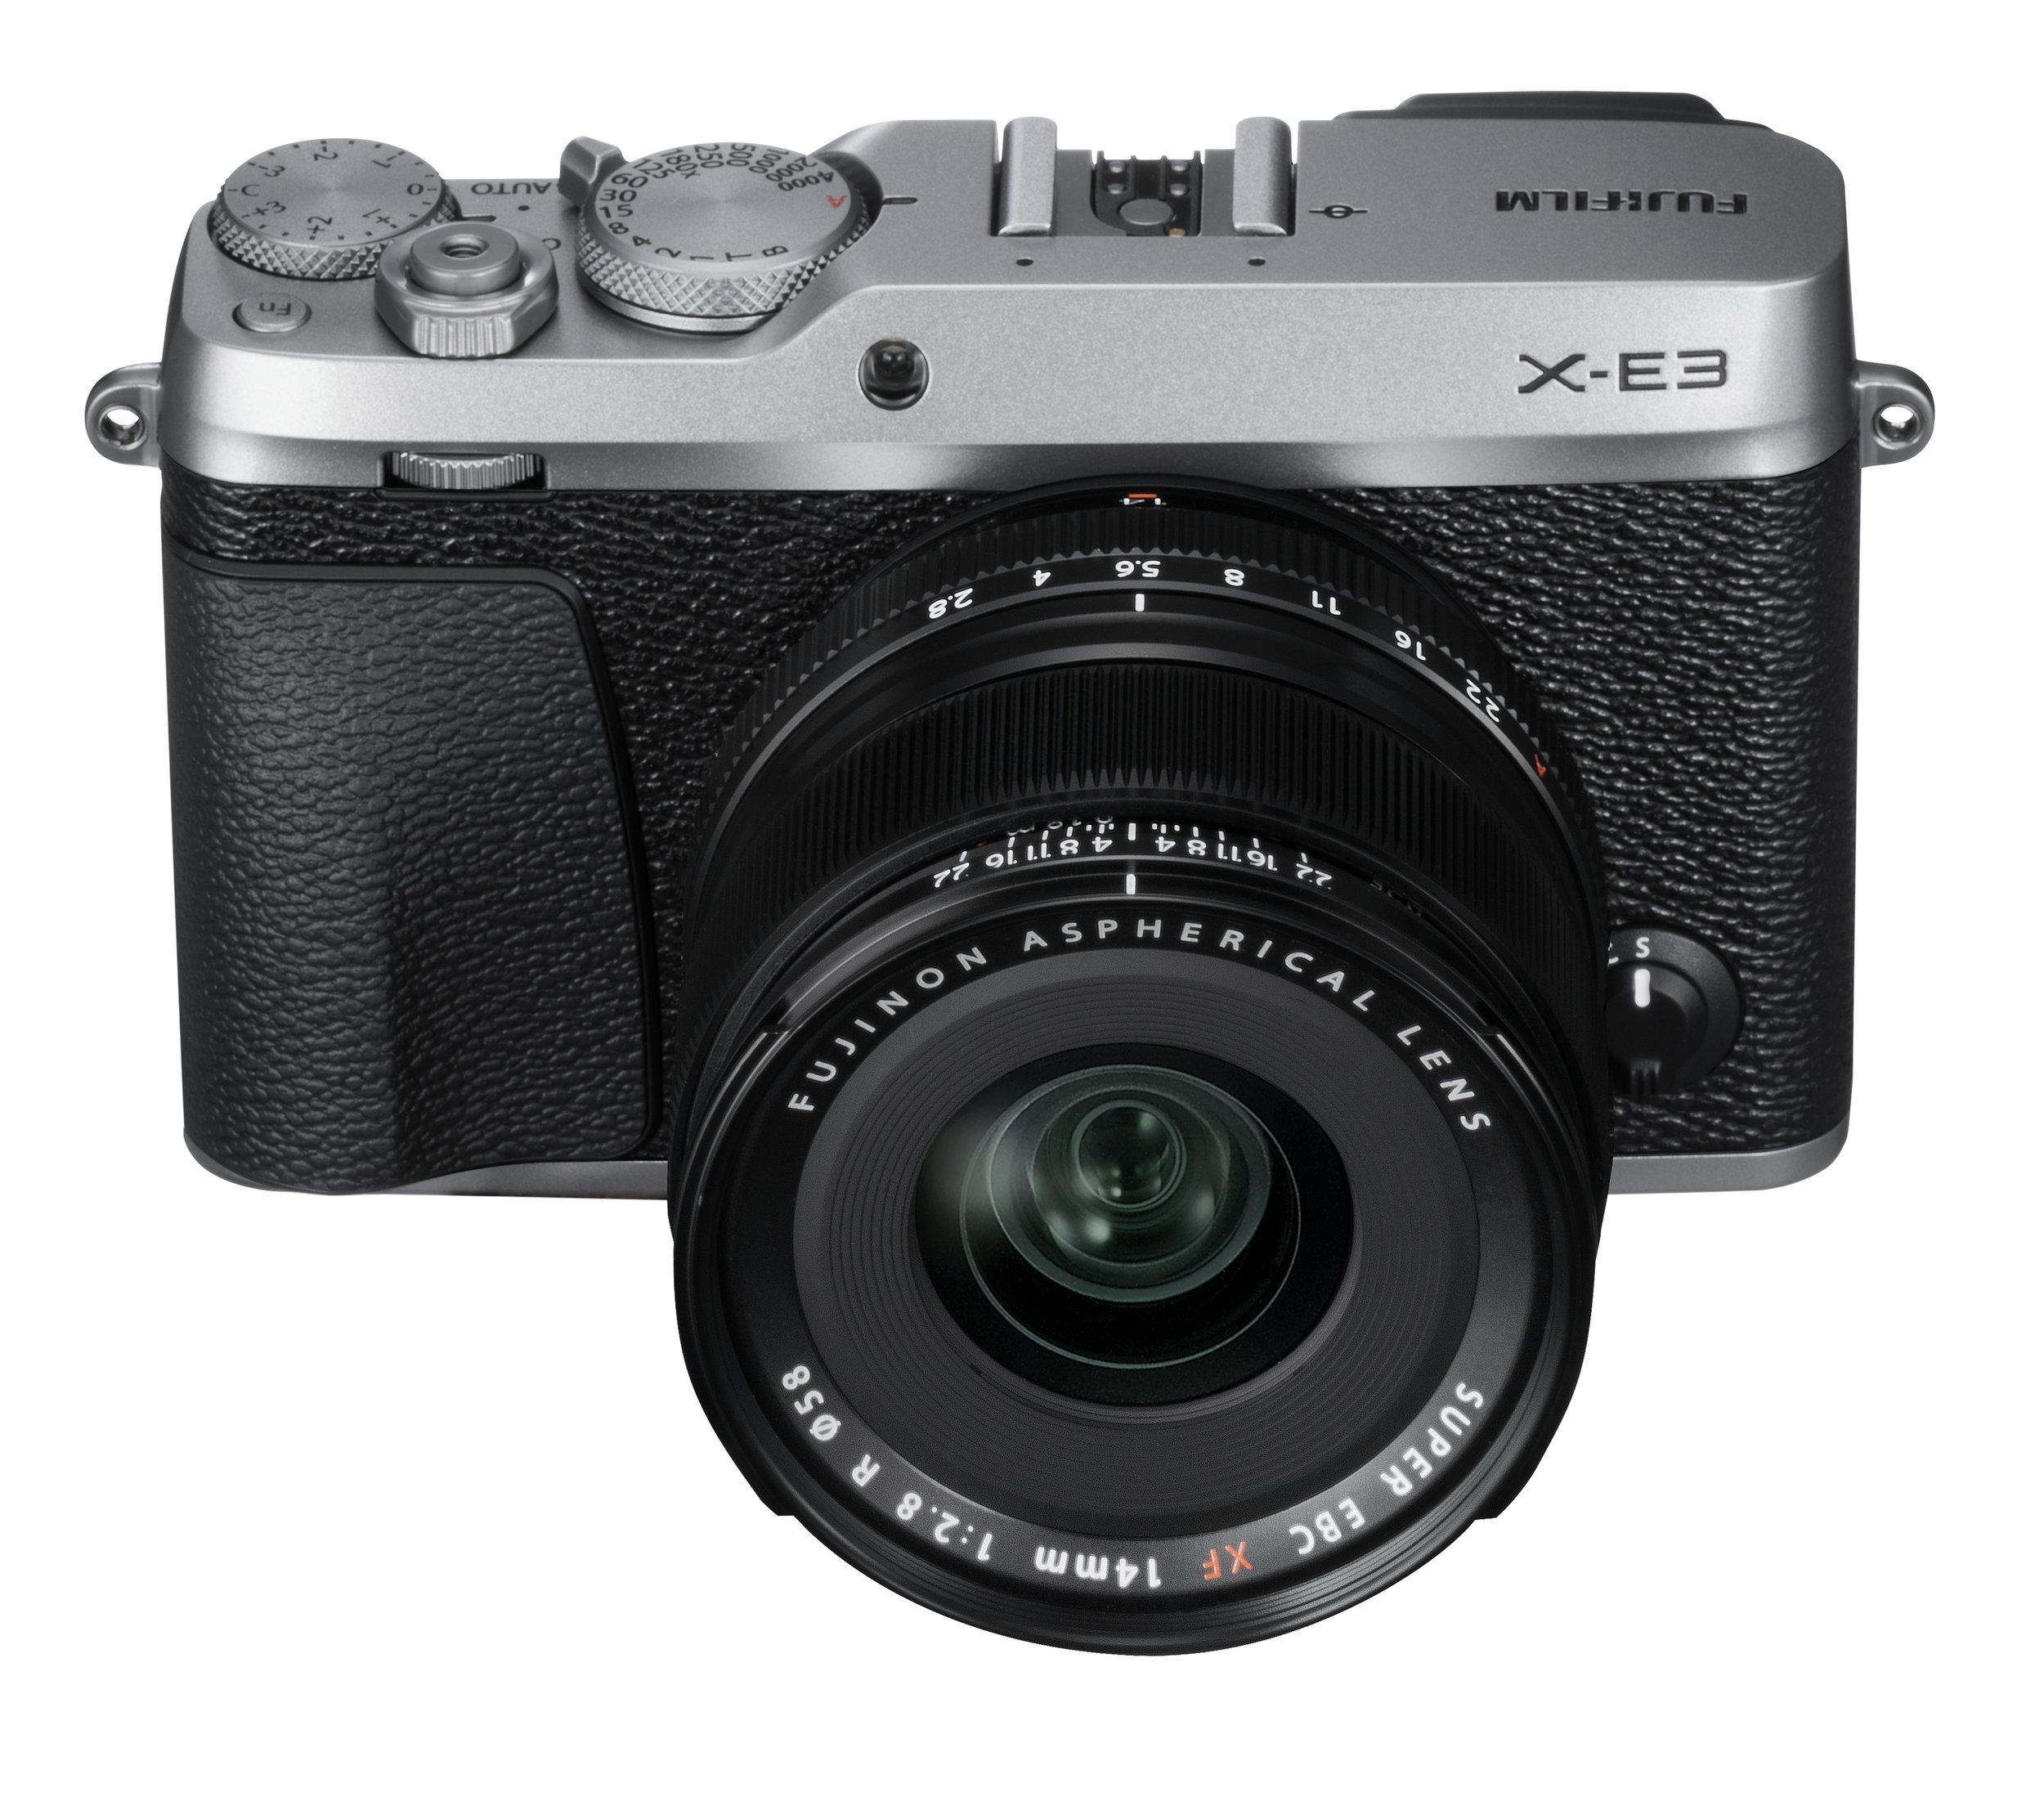 The X-E3 comes in silver and black, as above, or in all black for the real stealthy ones. Here it is twinned with the excellent 14m f/2.8 14mm prime